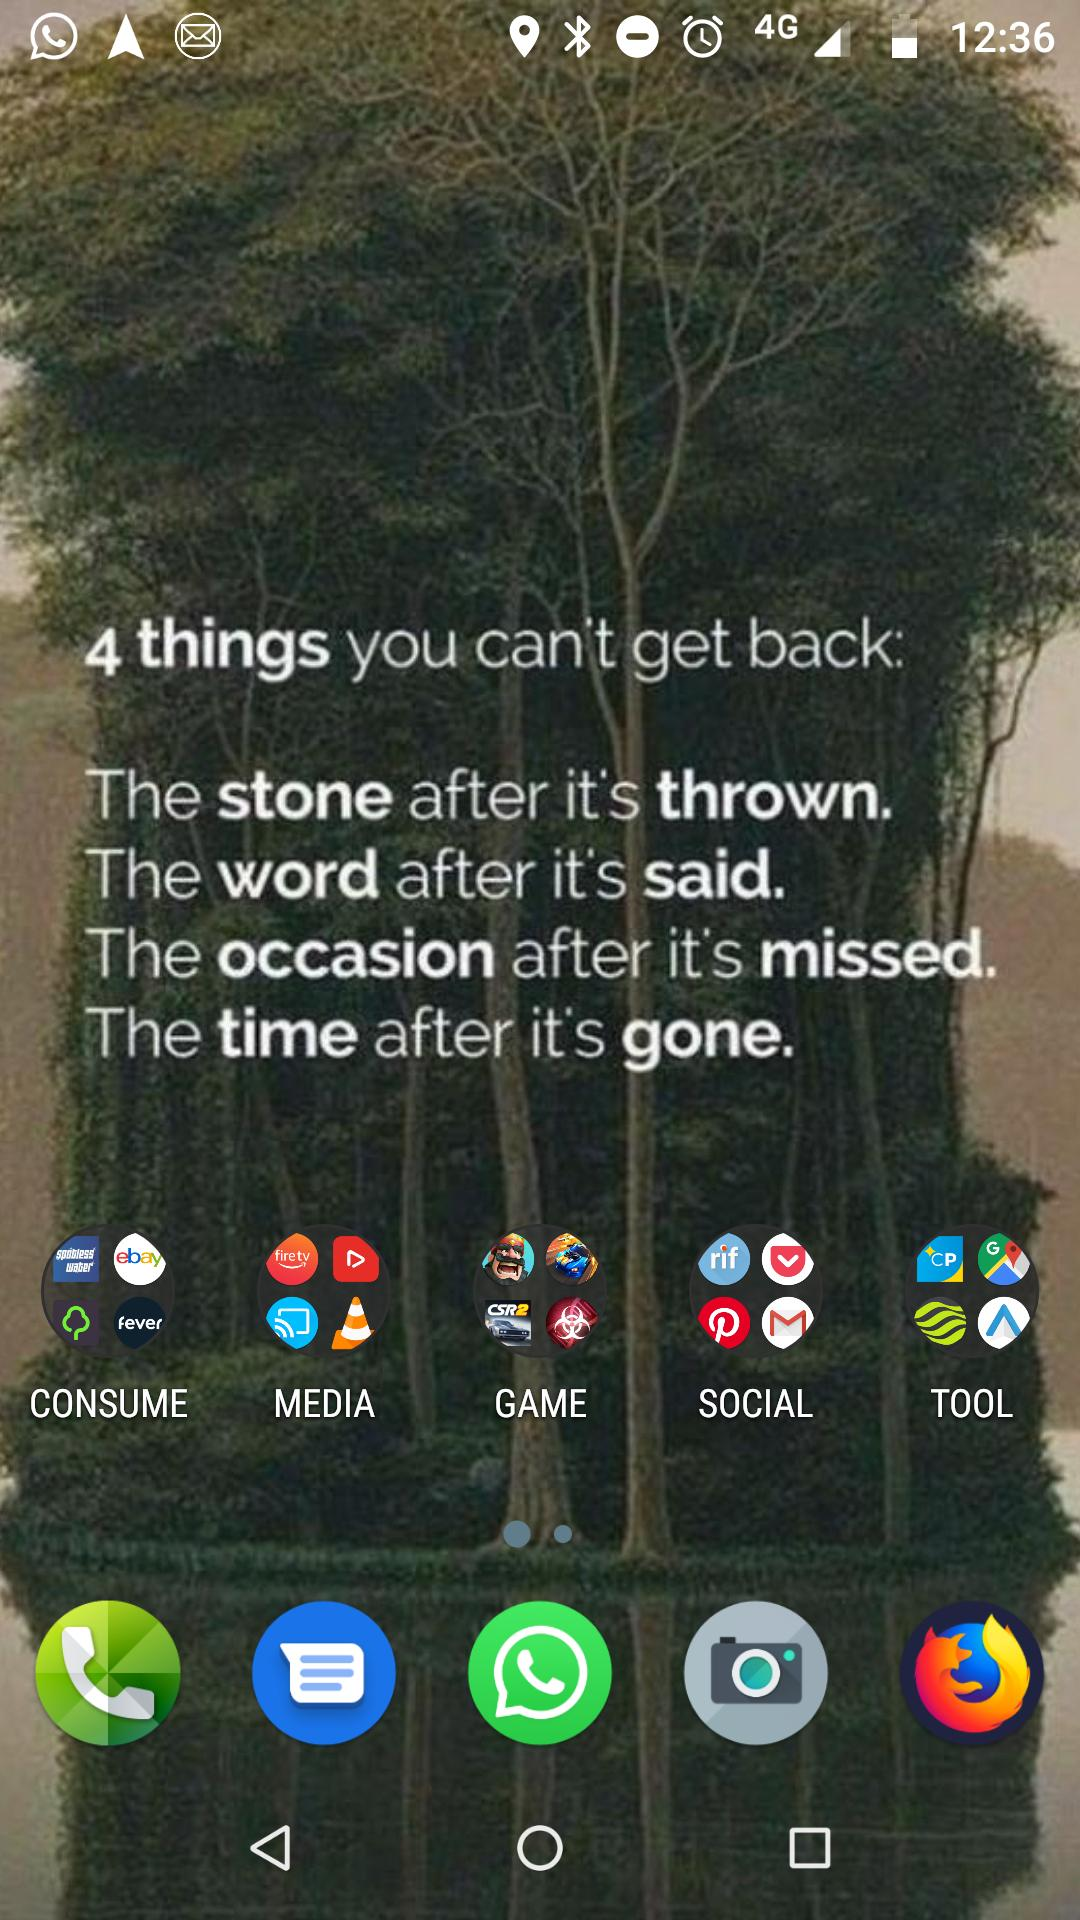 """' """" things you can't get back: . he stone after it's thrown. z= The word after it's said. -' , The occasion after it's mis The time after it's gone. I. O. @Q} (PM .I E0 C. 'CONSUME MEDIA GAME , SOCIAL TOOL p .0 1' OOfio <1 0 El https://inspirational.ly"""